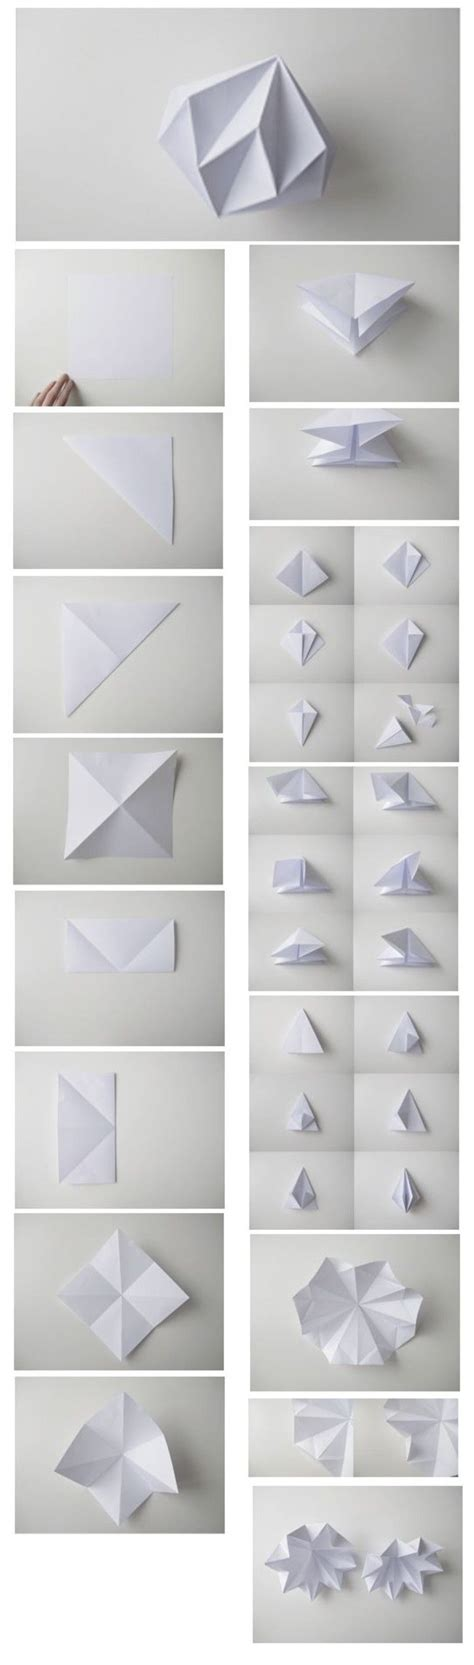 187 best images about paper folding origami on